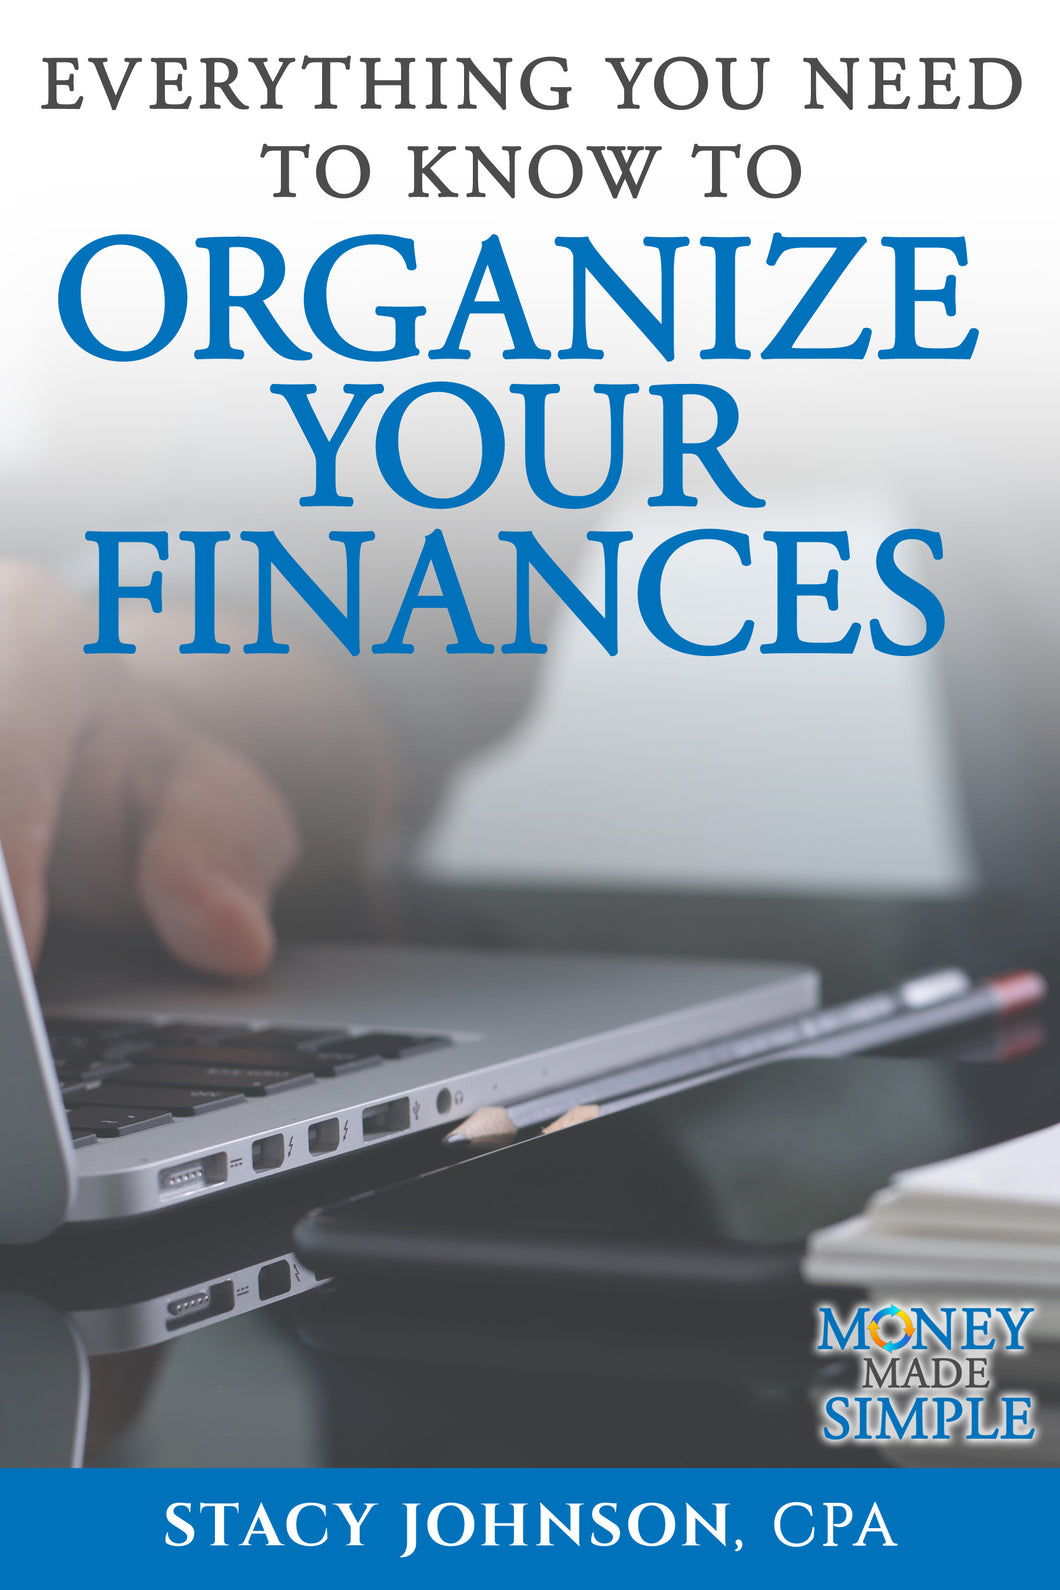 Organize Your Finances (Money Made Simple)